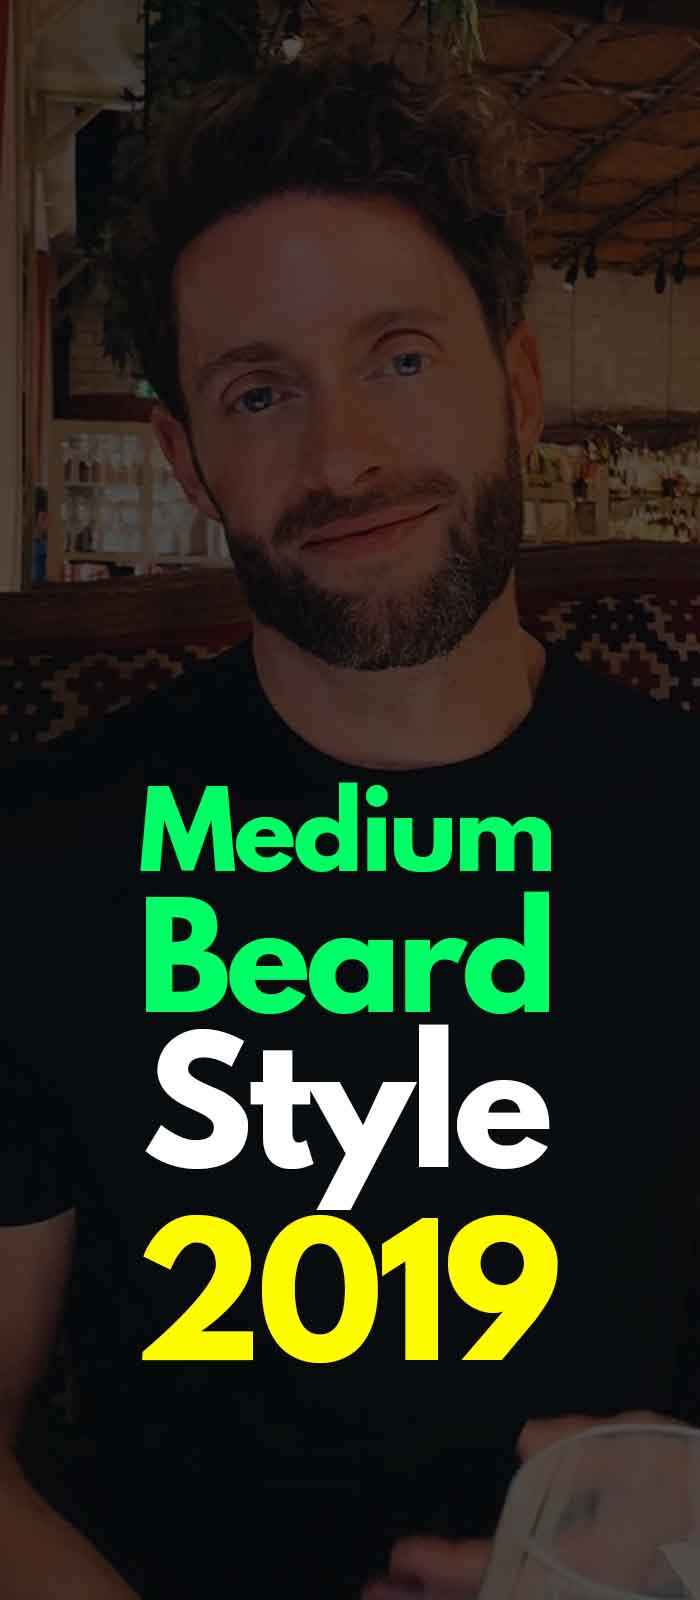 Black Tshirt, Medium Beard style for men!